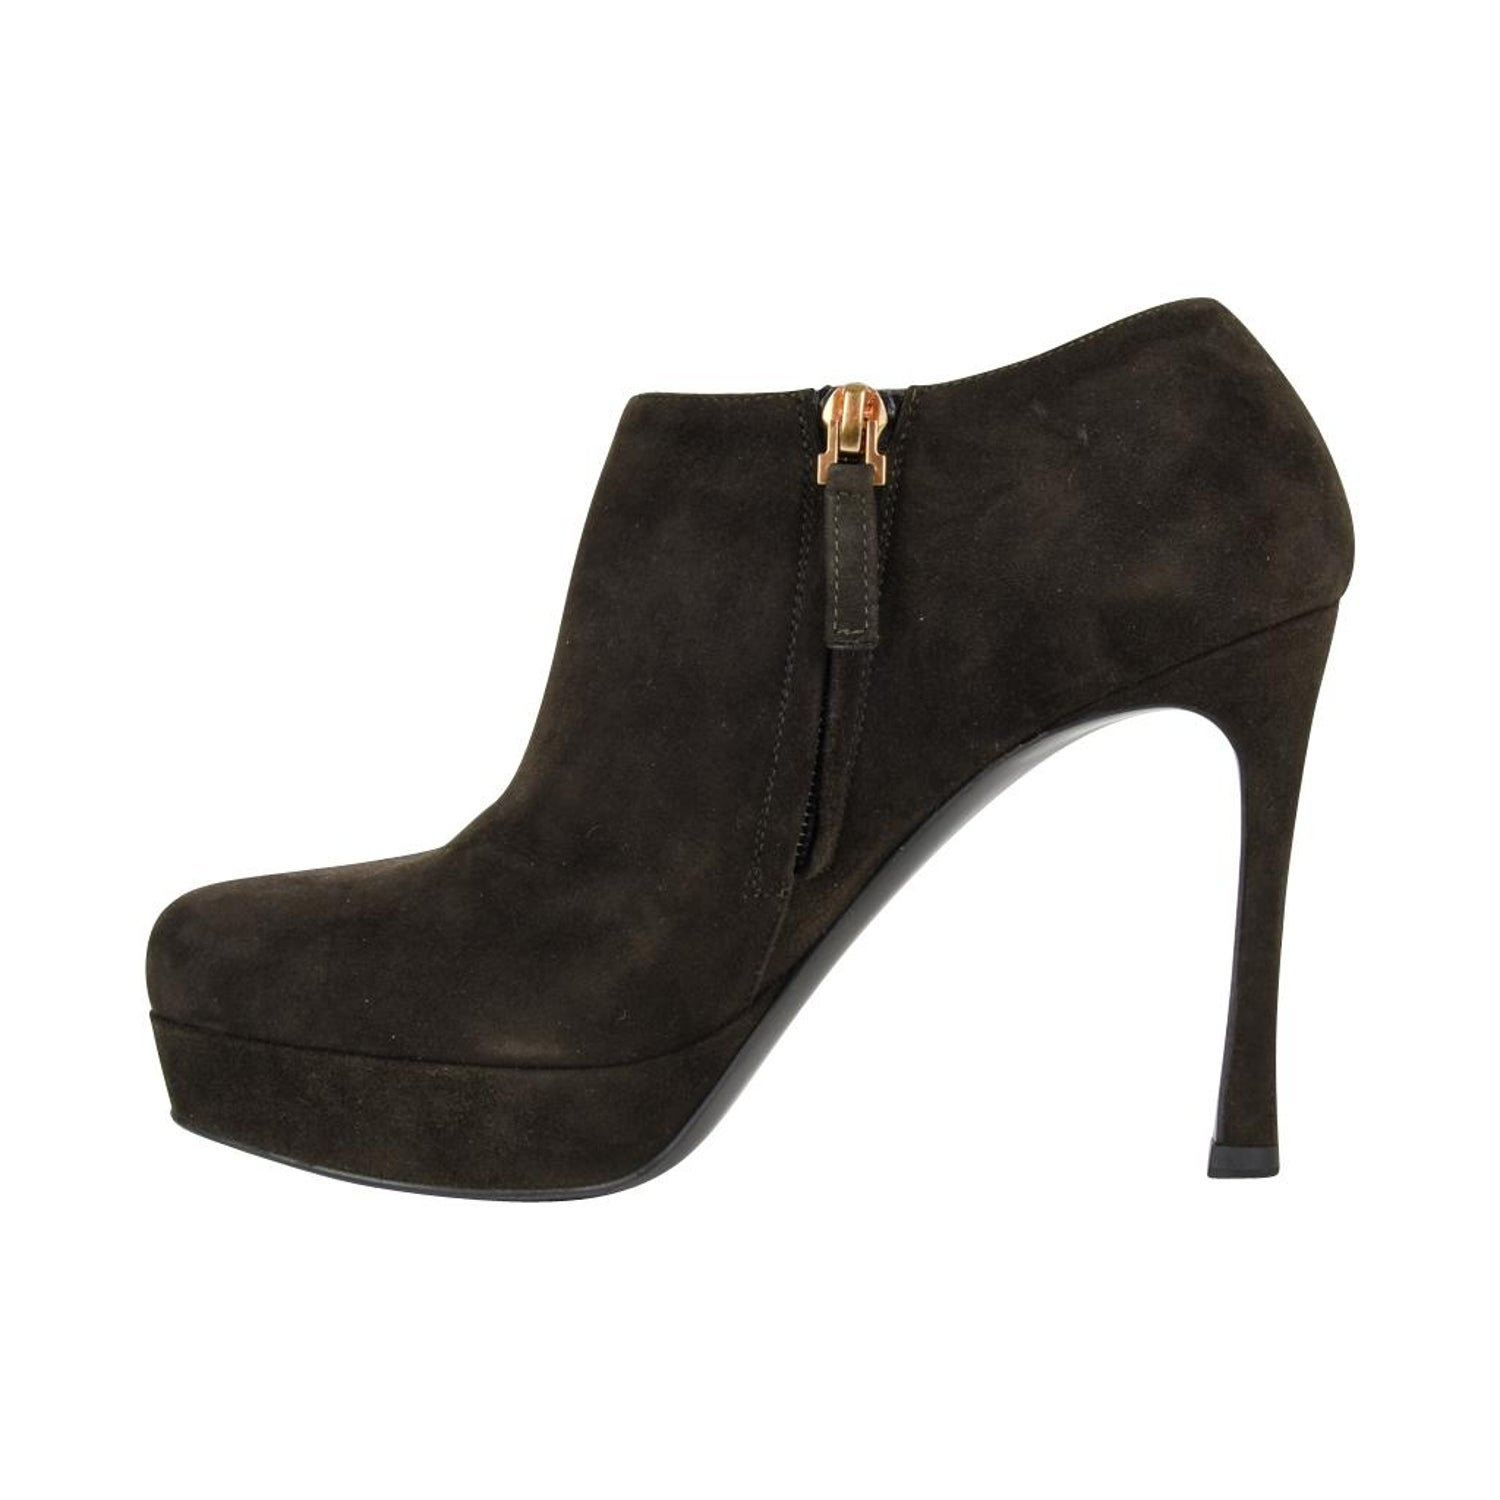 7e0191c8519 YSL Bootie Dark Green Suede Ankle Boot Yves Saint Laurent 36.5 / 6.5 For  Sale at 1stdibs